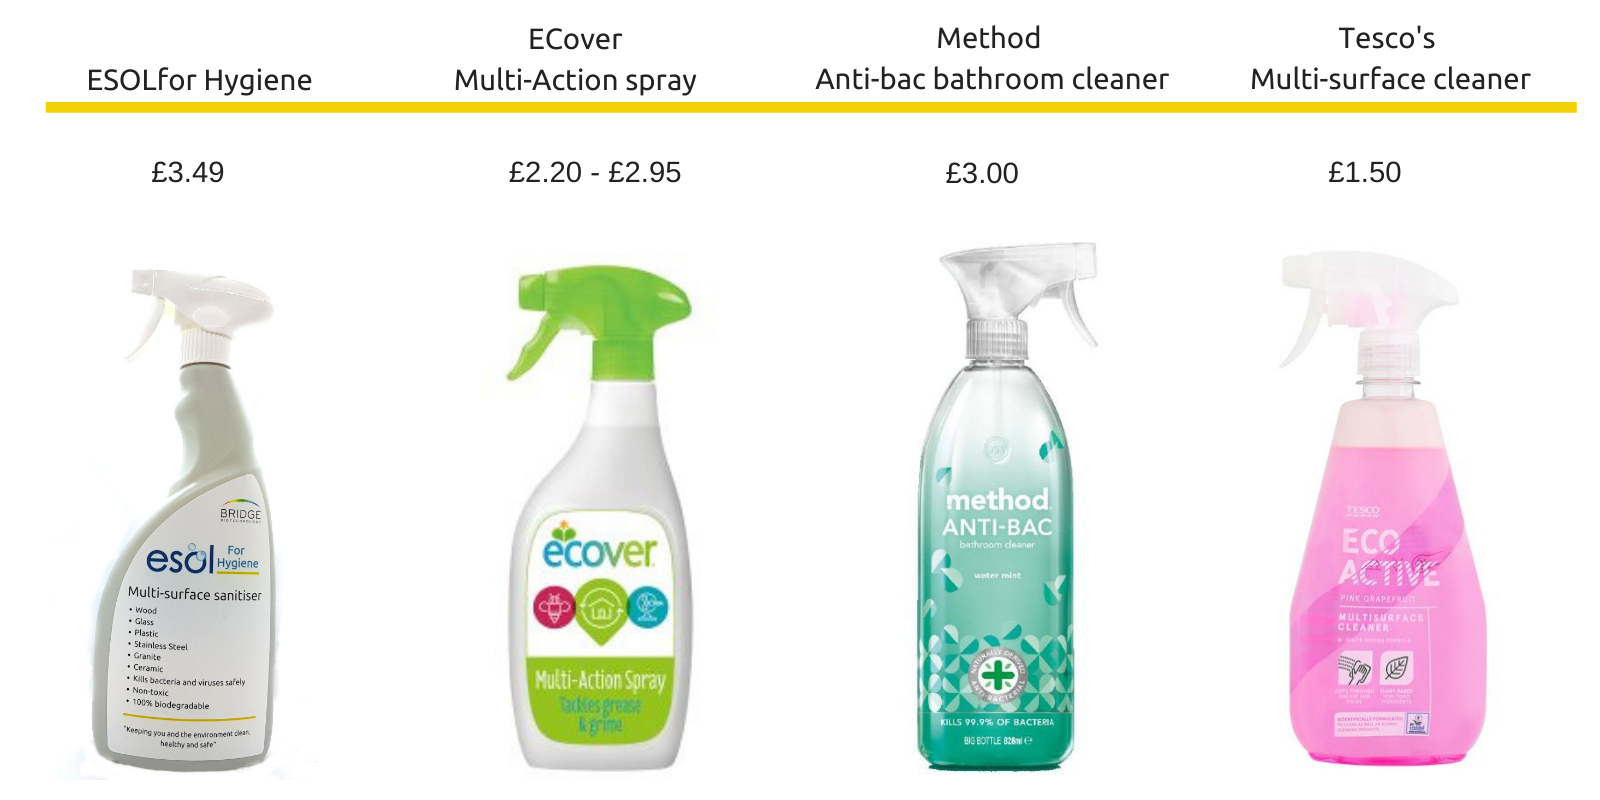 Safe cleaning alternatives for my kitchen - Method vs ECover vs Tescos vs ESOL